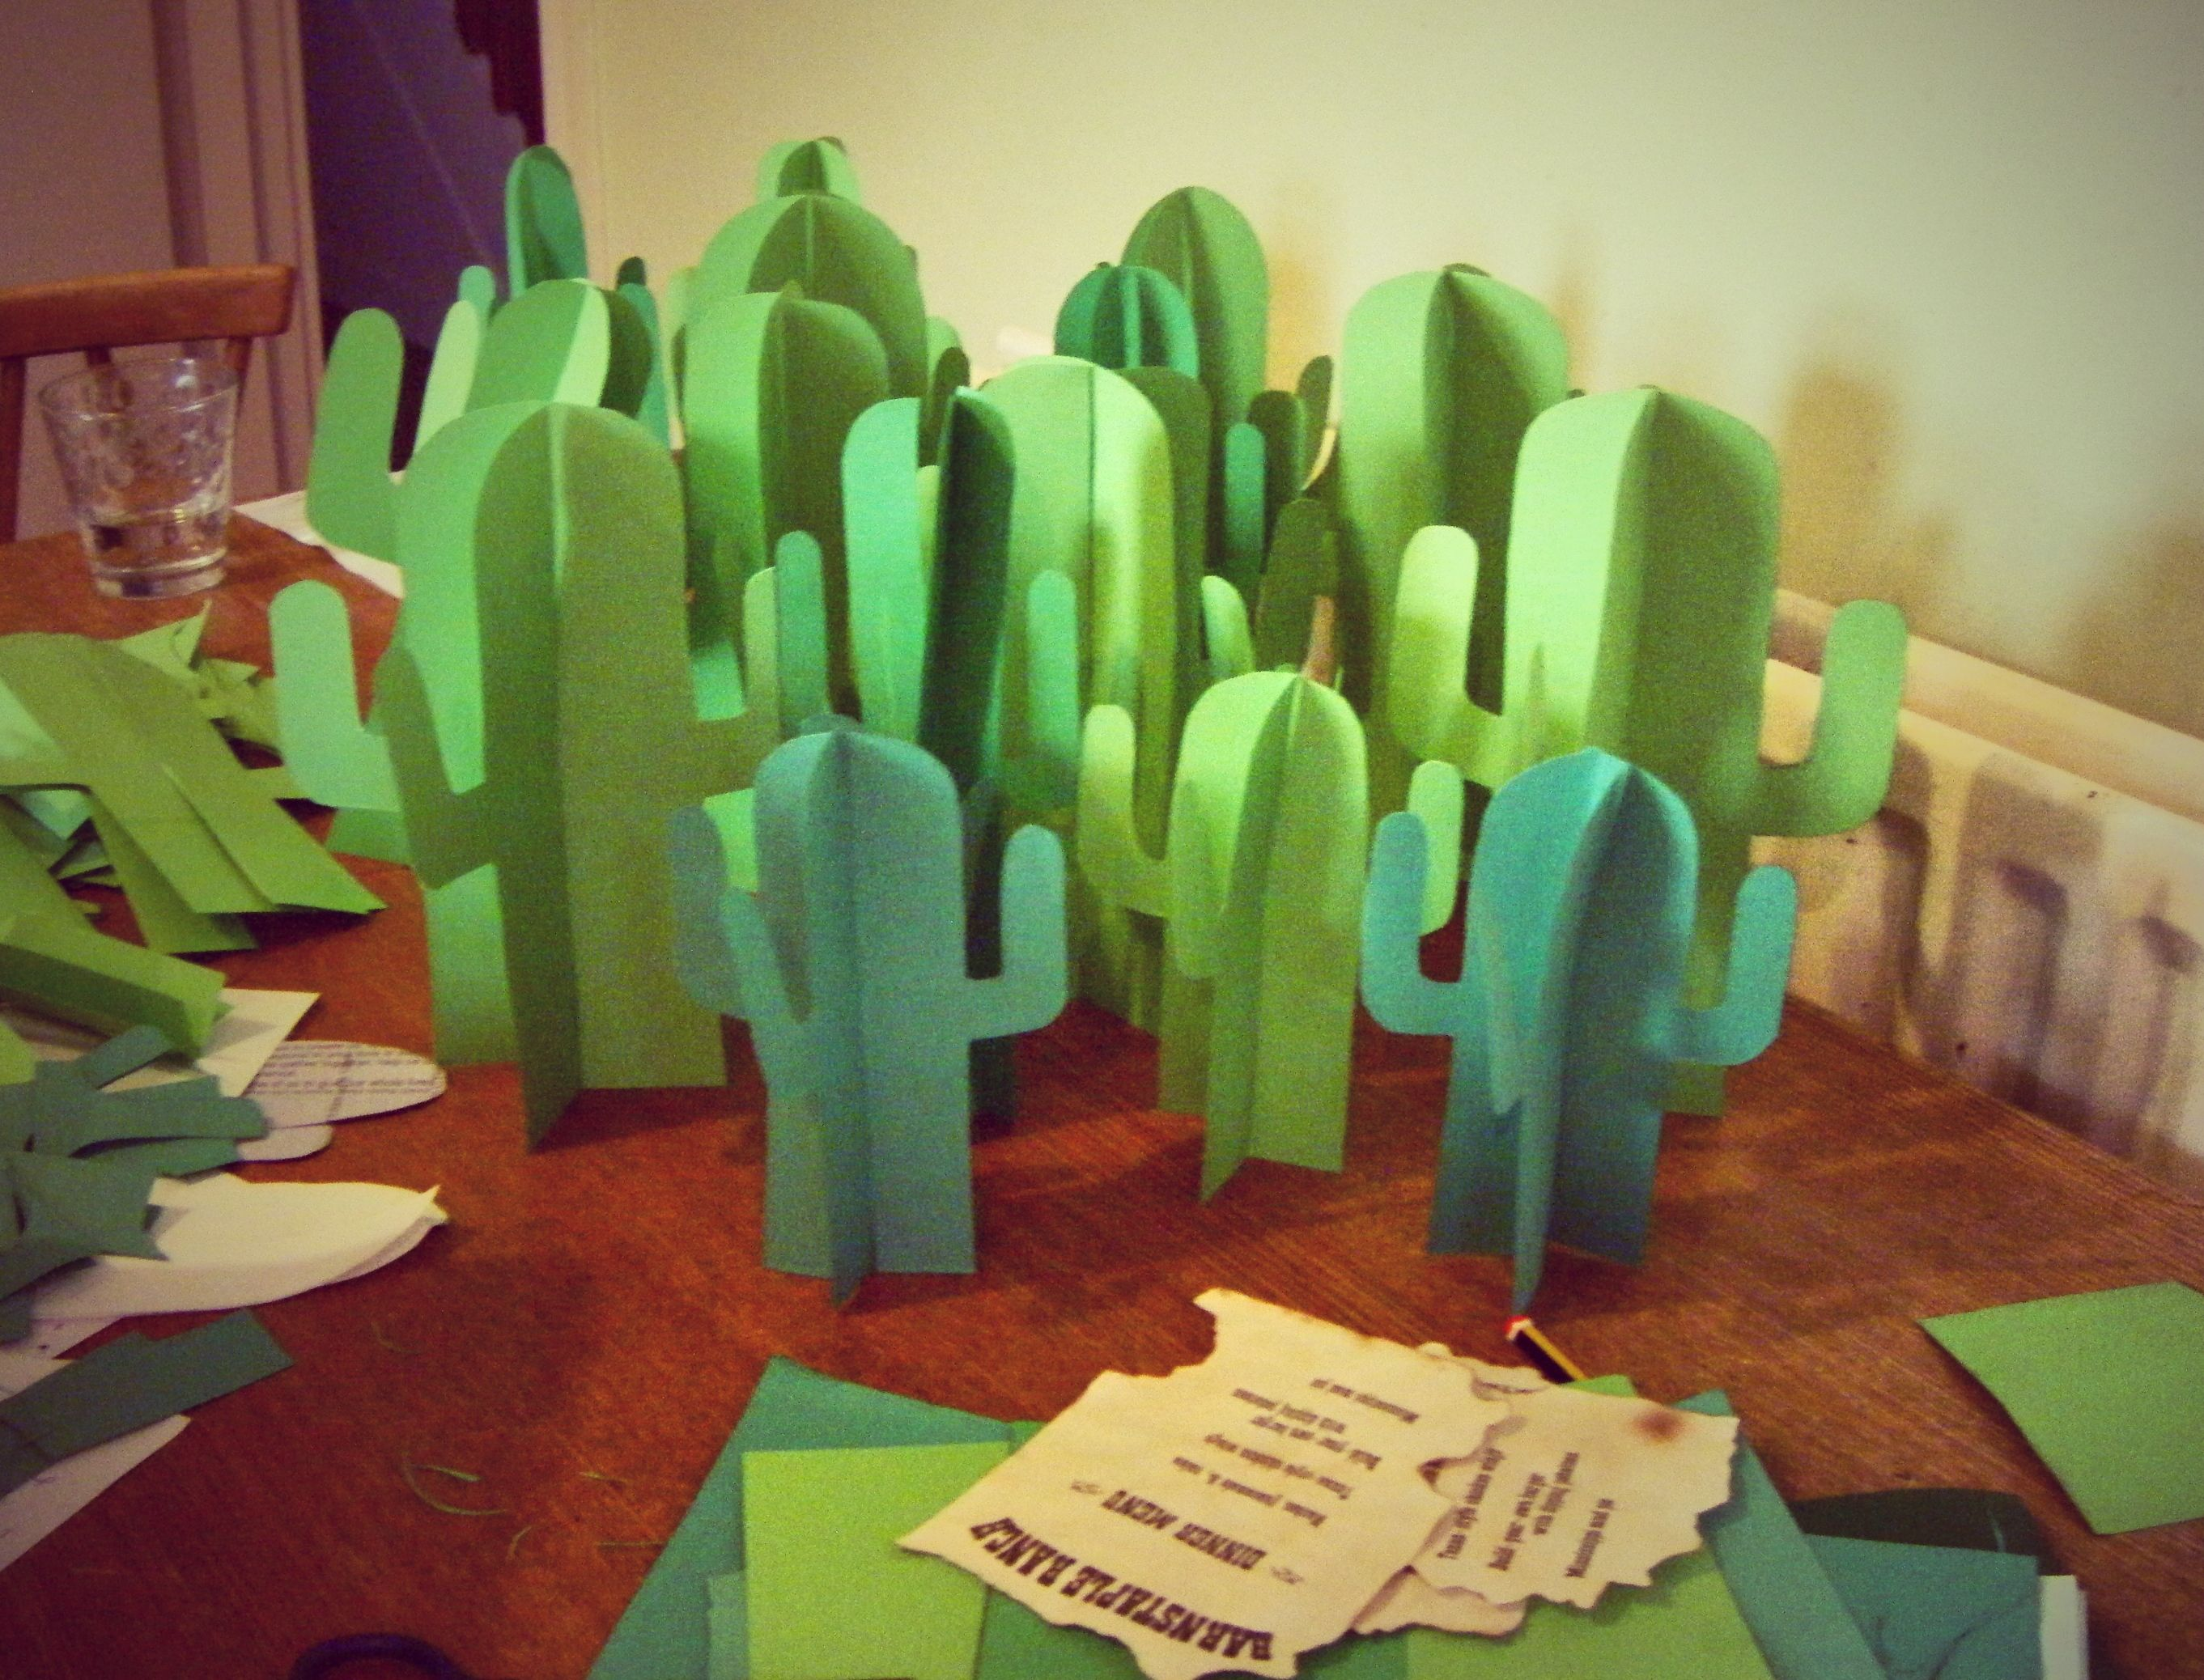 Wild West Themed Cacti Table Decorations Try Making Big